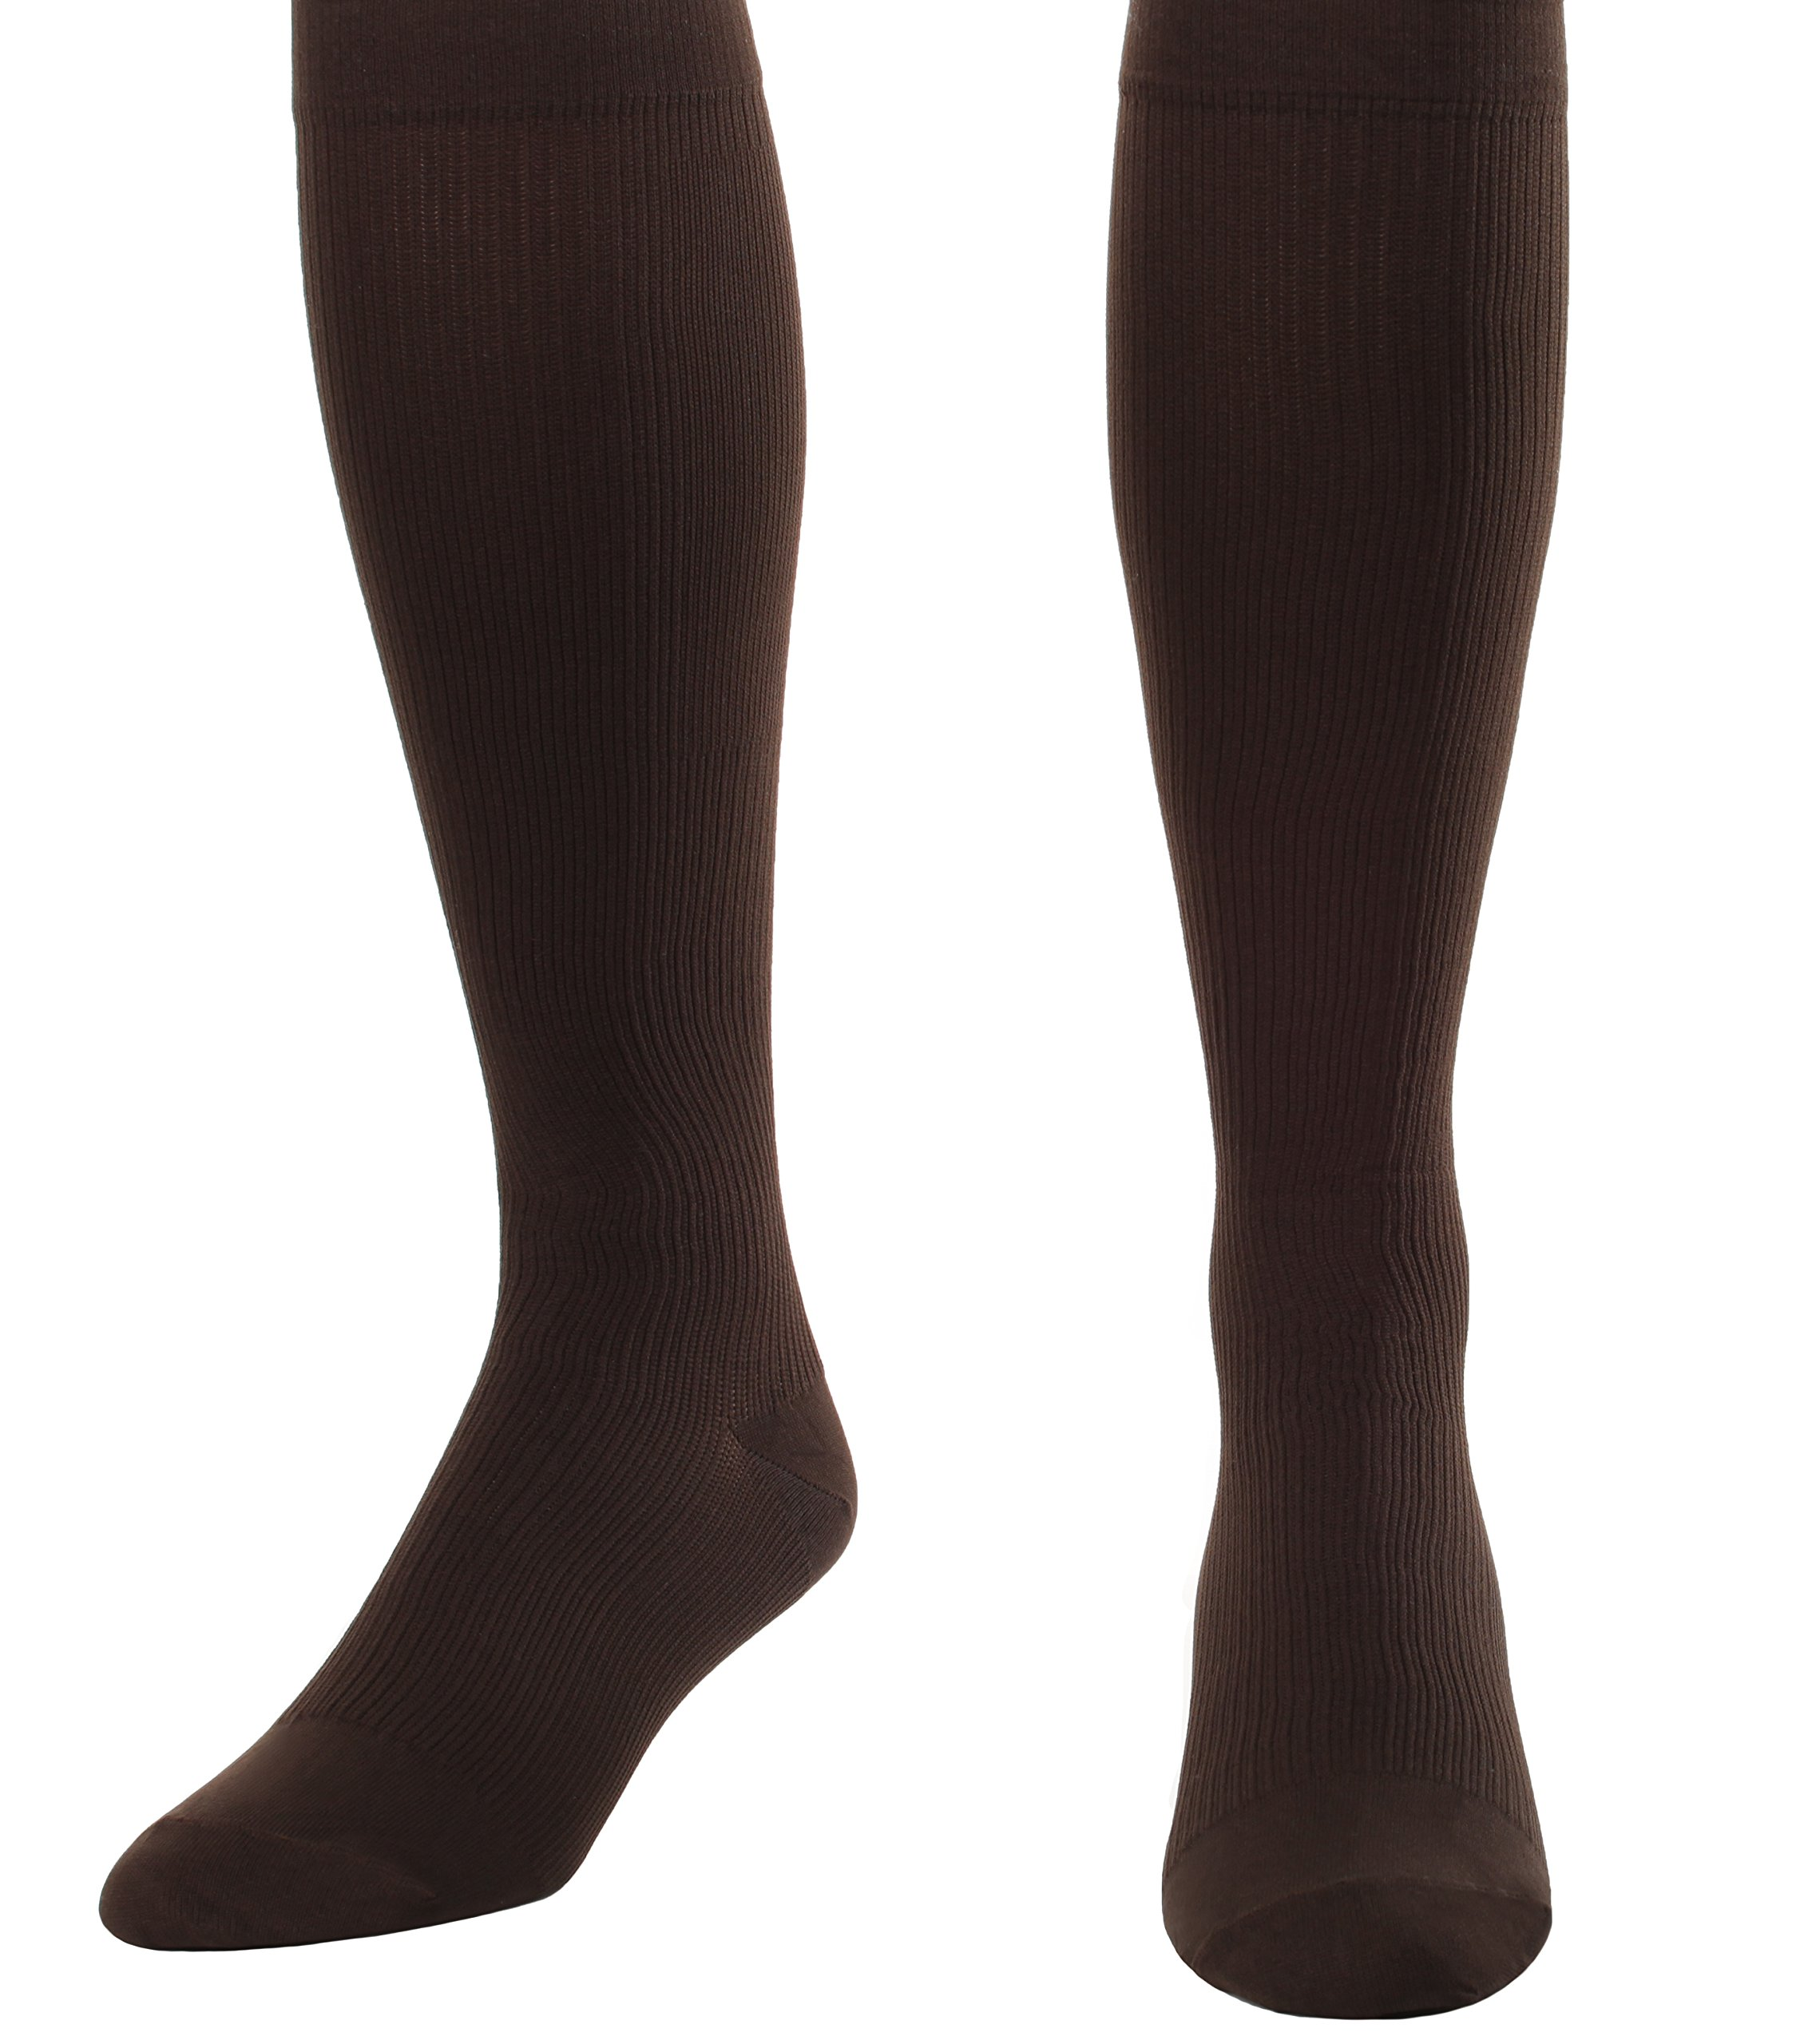 Made in The USA - Medical Compression Socks for Men, Firm Graduated Support Socks 20-30mmHg - Closed Toe - 1 Pair - Absolute Support, SKU: A104BR2 (Brown, Medium) - Helps with Poor Circulation, Edema